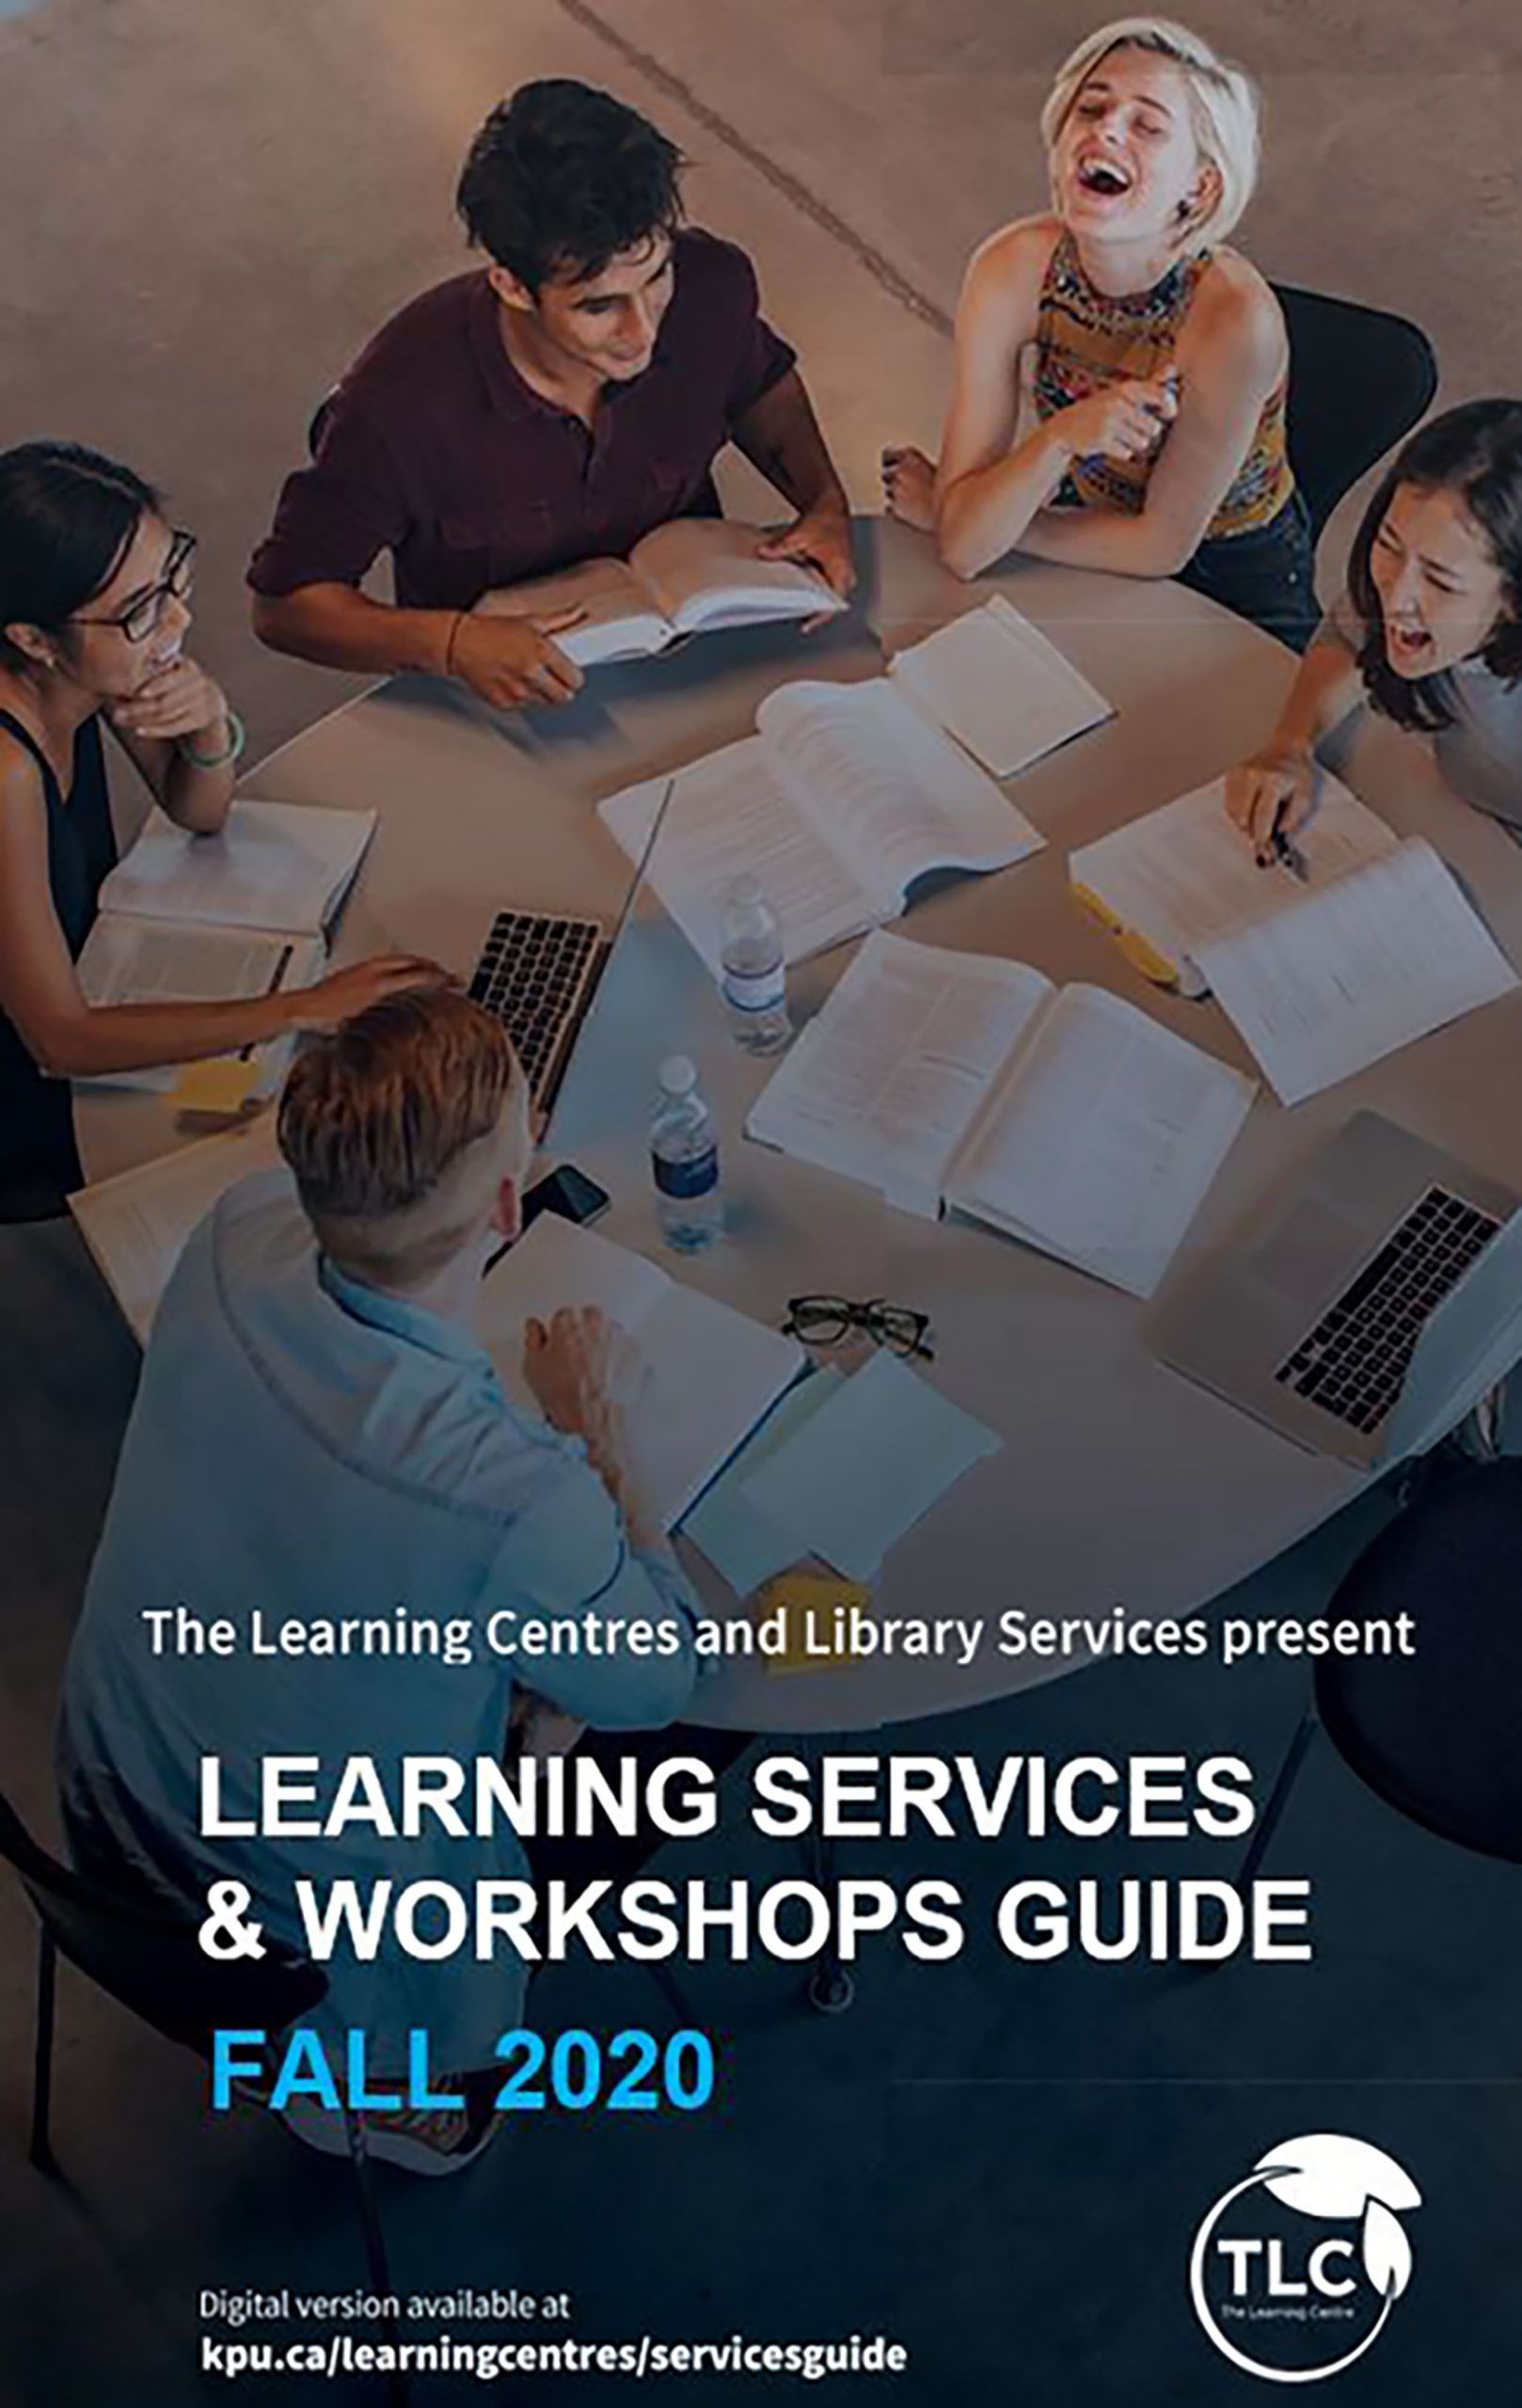 Cover image for Learning Services and Workshop Guide Fall 2020